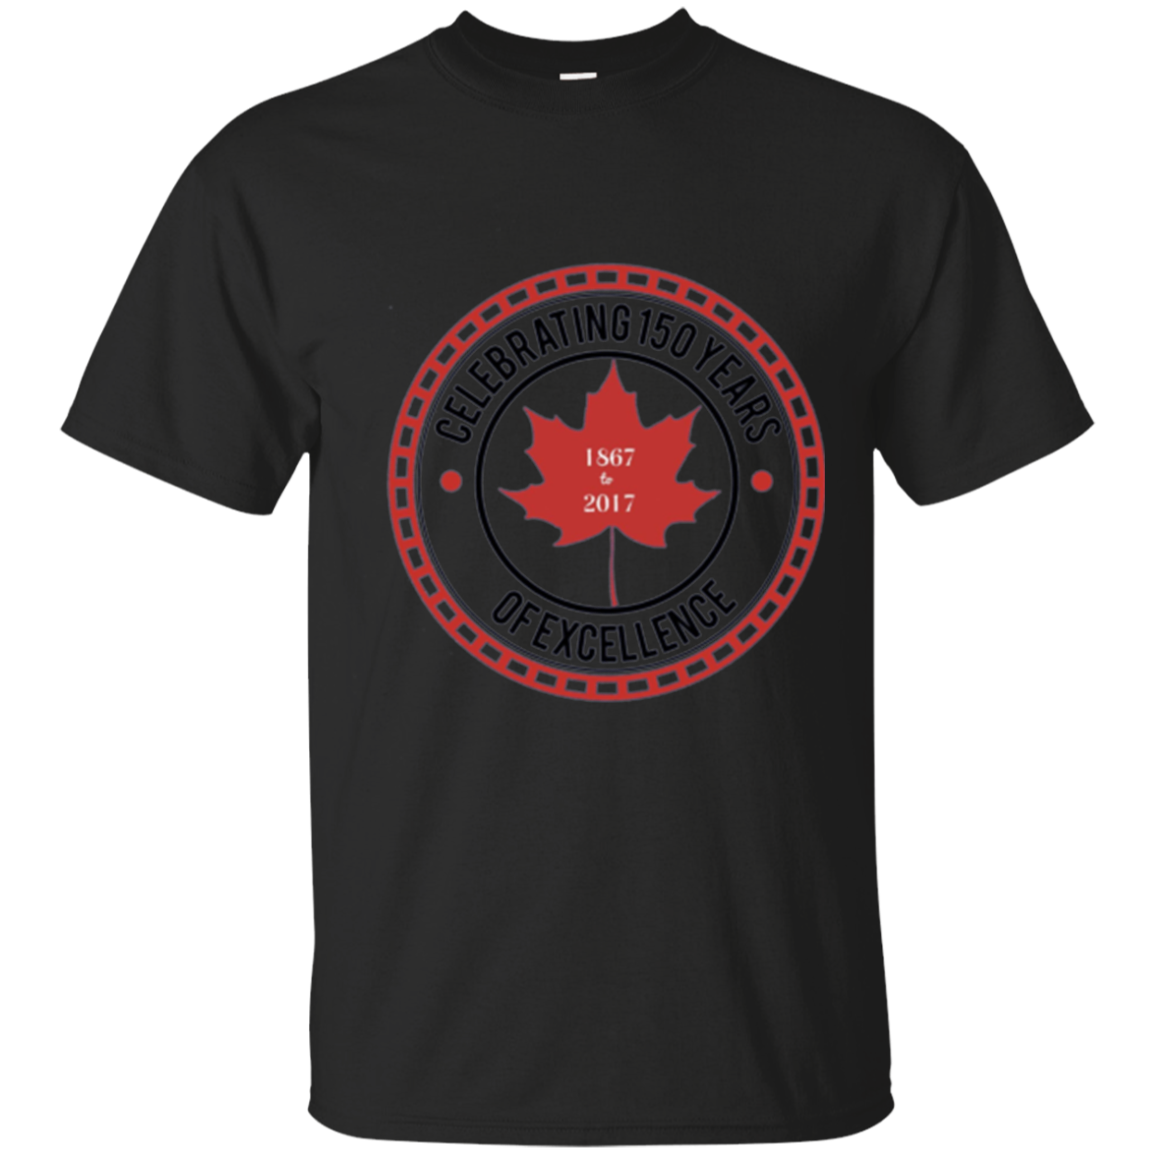 MASTER TSHIRTS:  Original Canada Day 150th Celebrating 150